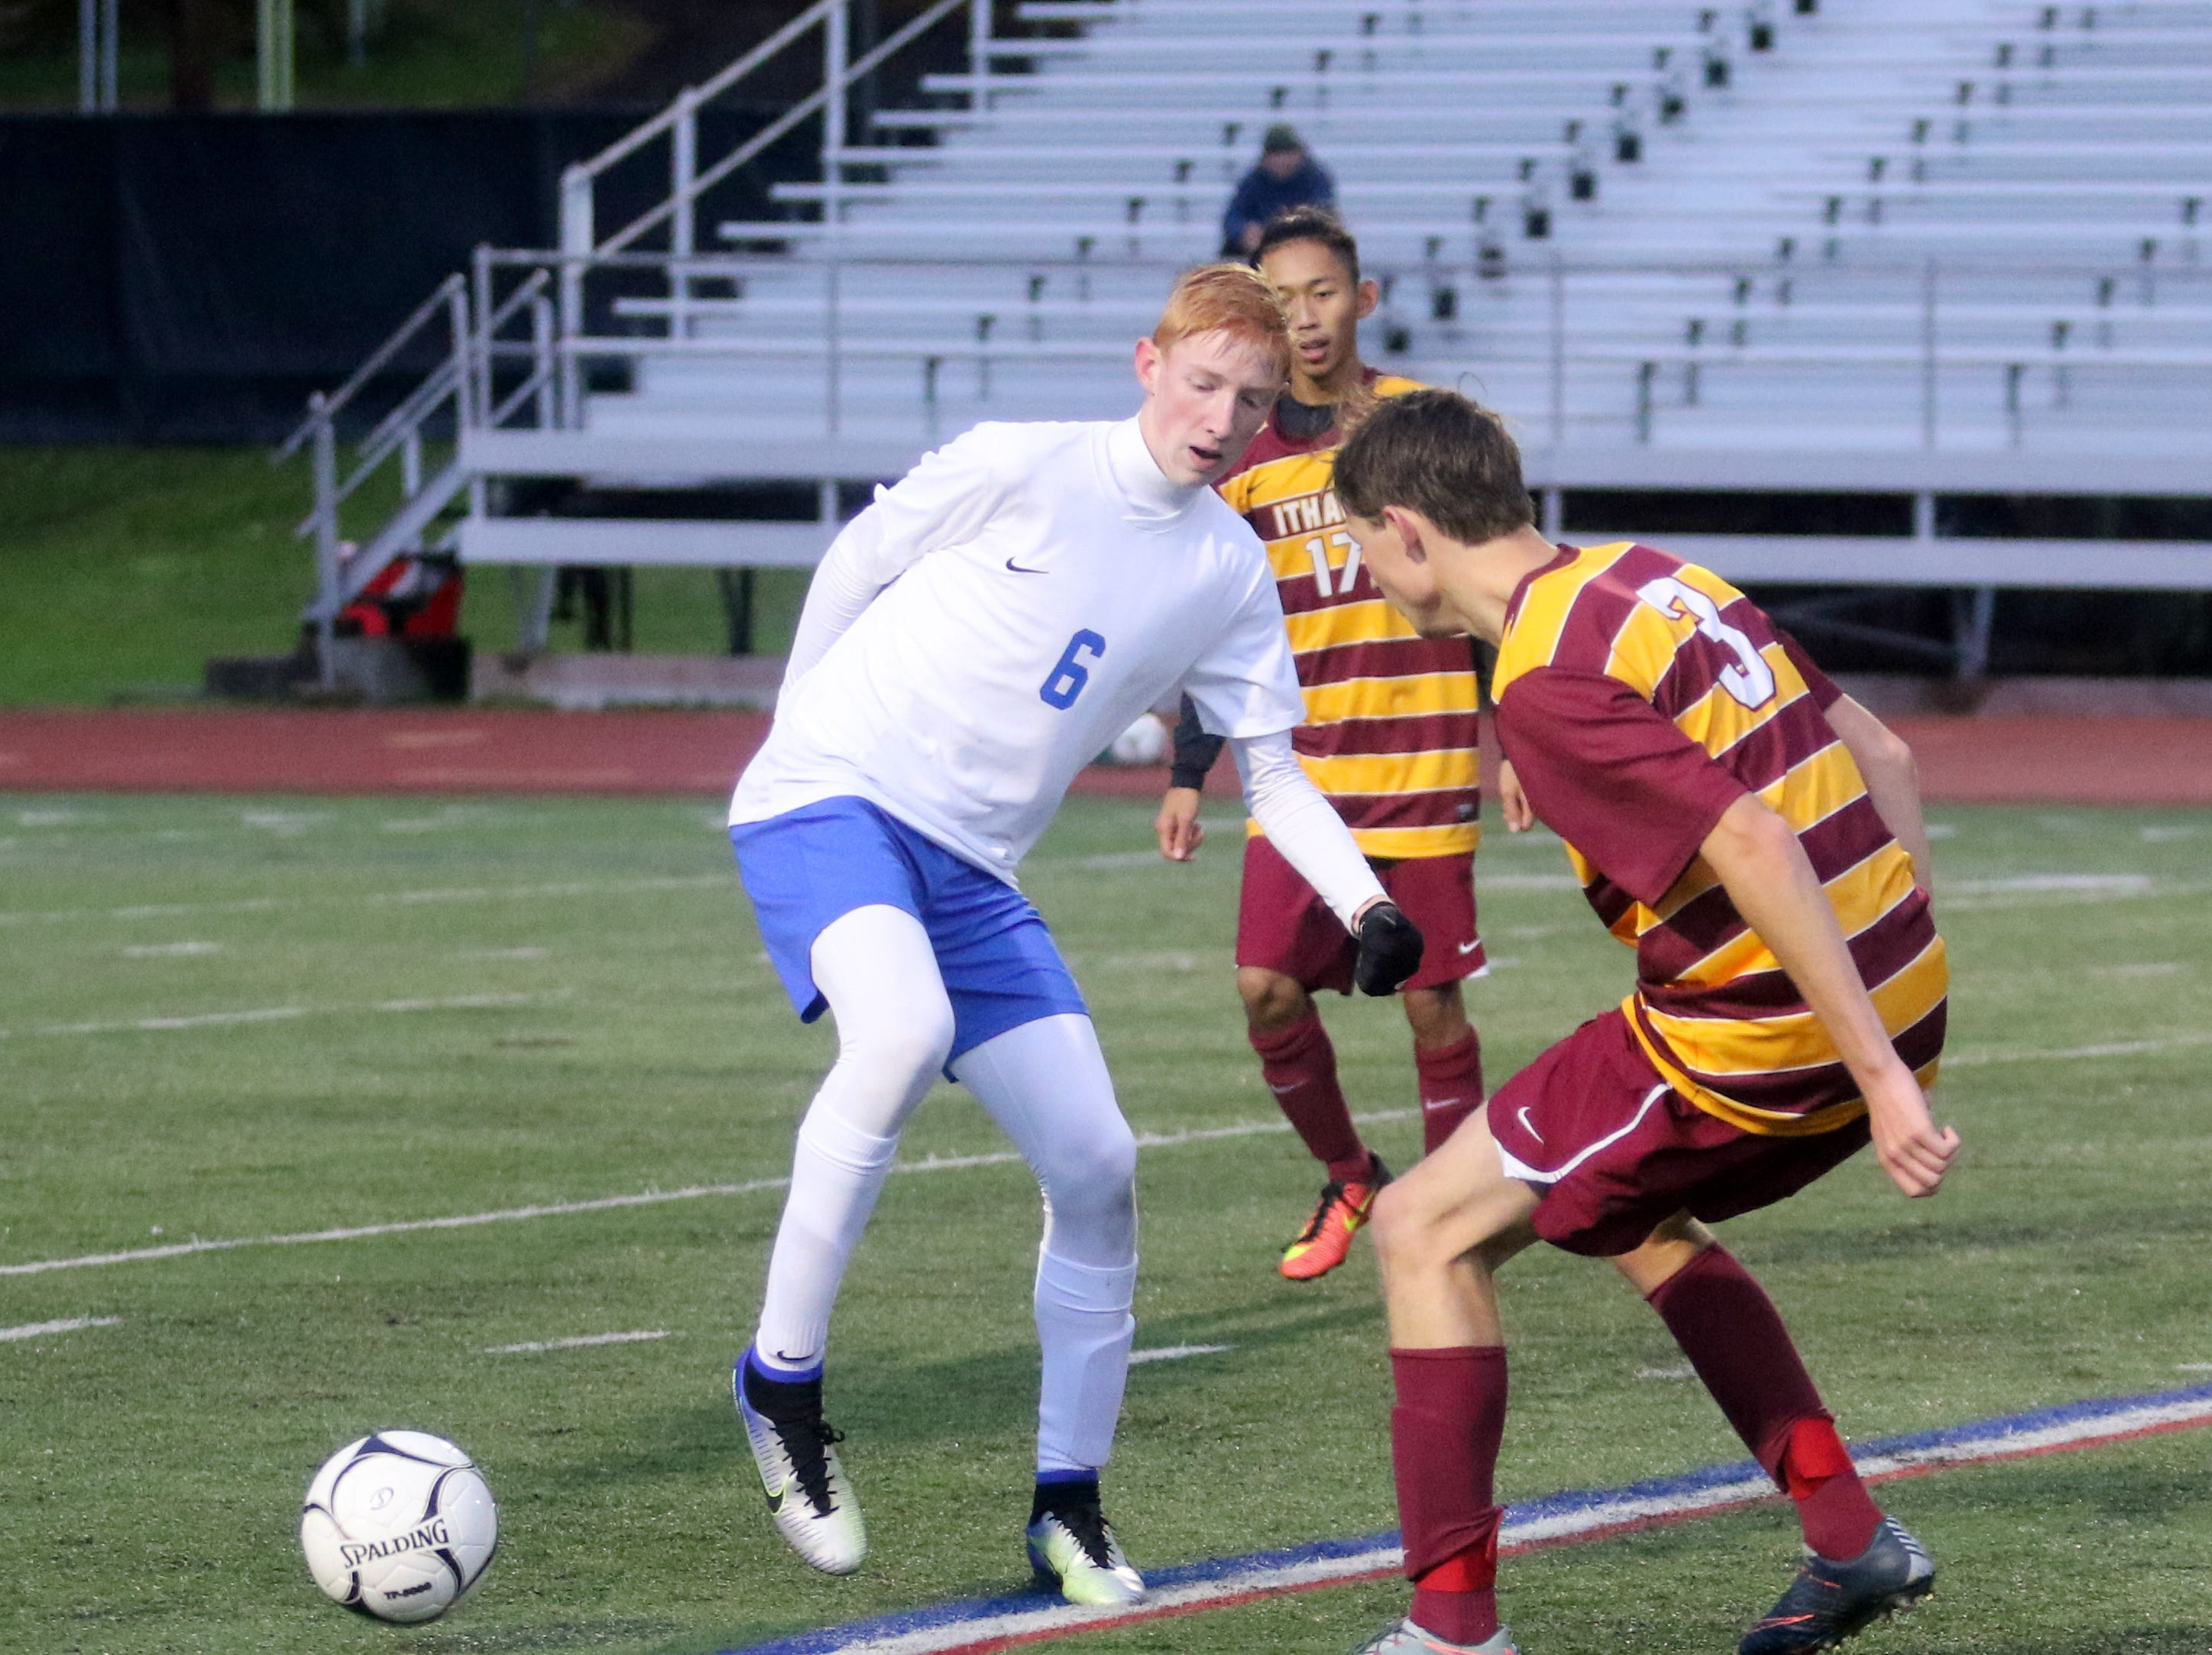 Horseheads and Ithaca played to a 1-1 tie in the Section 4 Class AA boys soccer final Oct. 29, 2018 at Ithaca High School. The teams were co-champions, but Horseheads was a 4-3 winner in a penalty-kick shootout to advance to the state tournament.